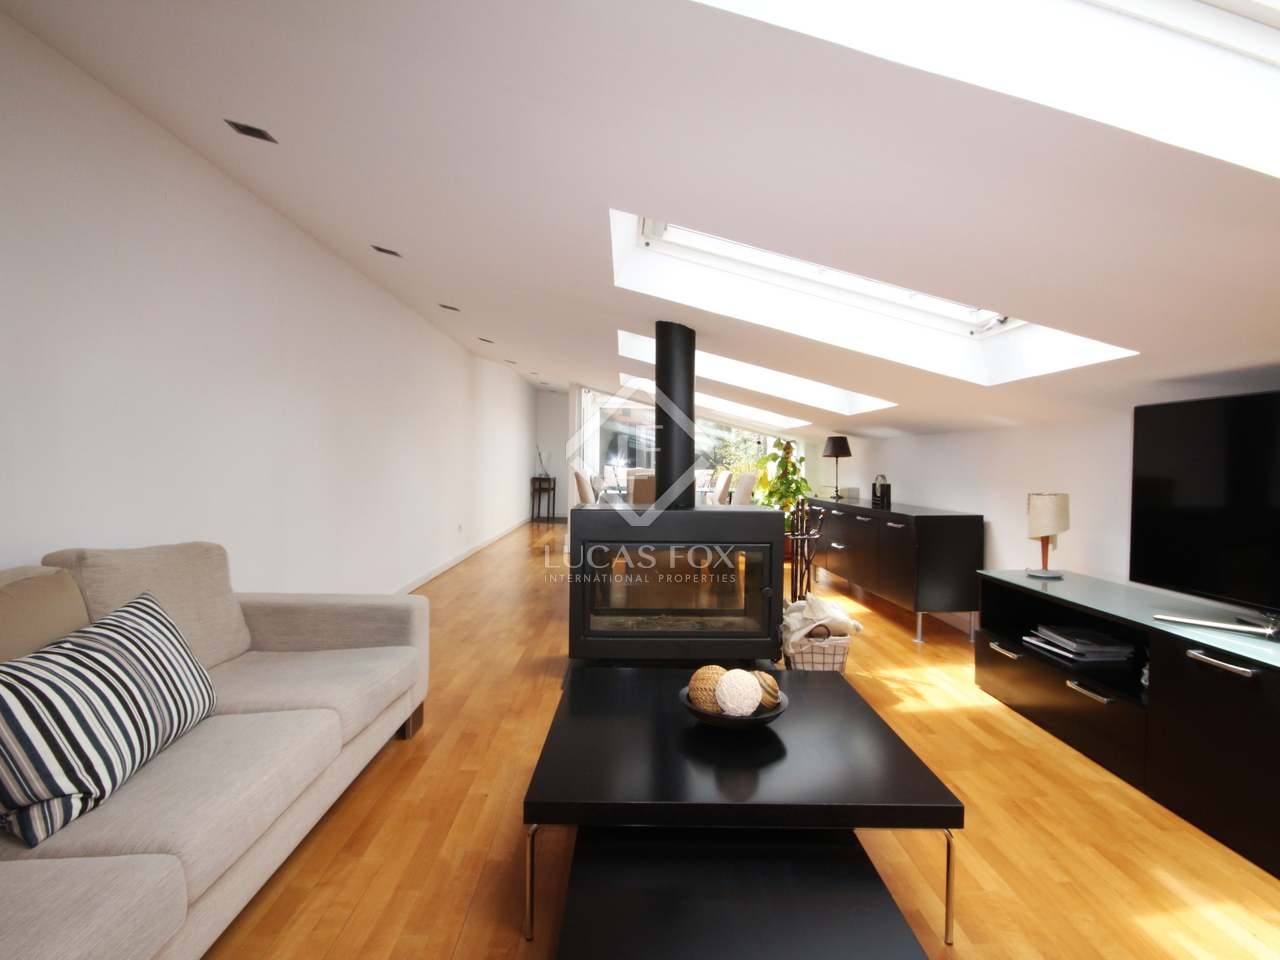 Recently renovated penthouse decorated in very good taste with spacious and airy rooms and a lovely terrace to relax on